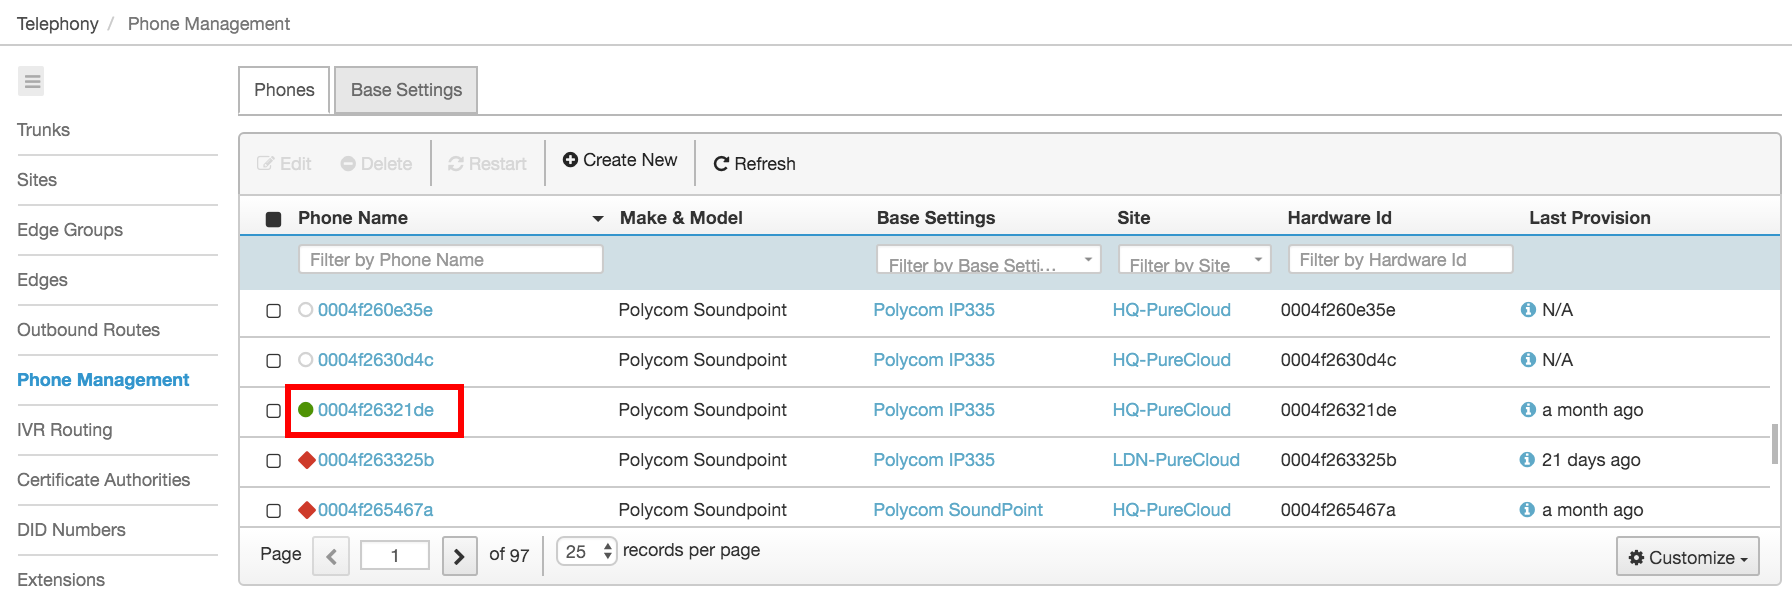 Manually configure the provisioning information for the Polycom